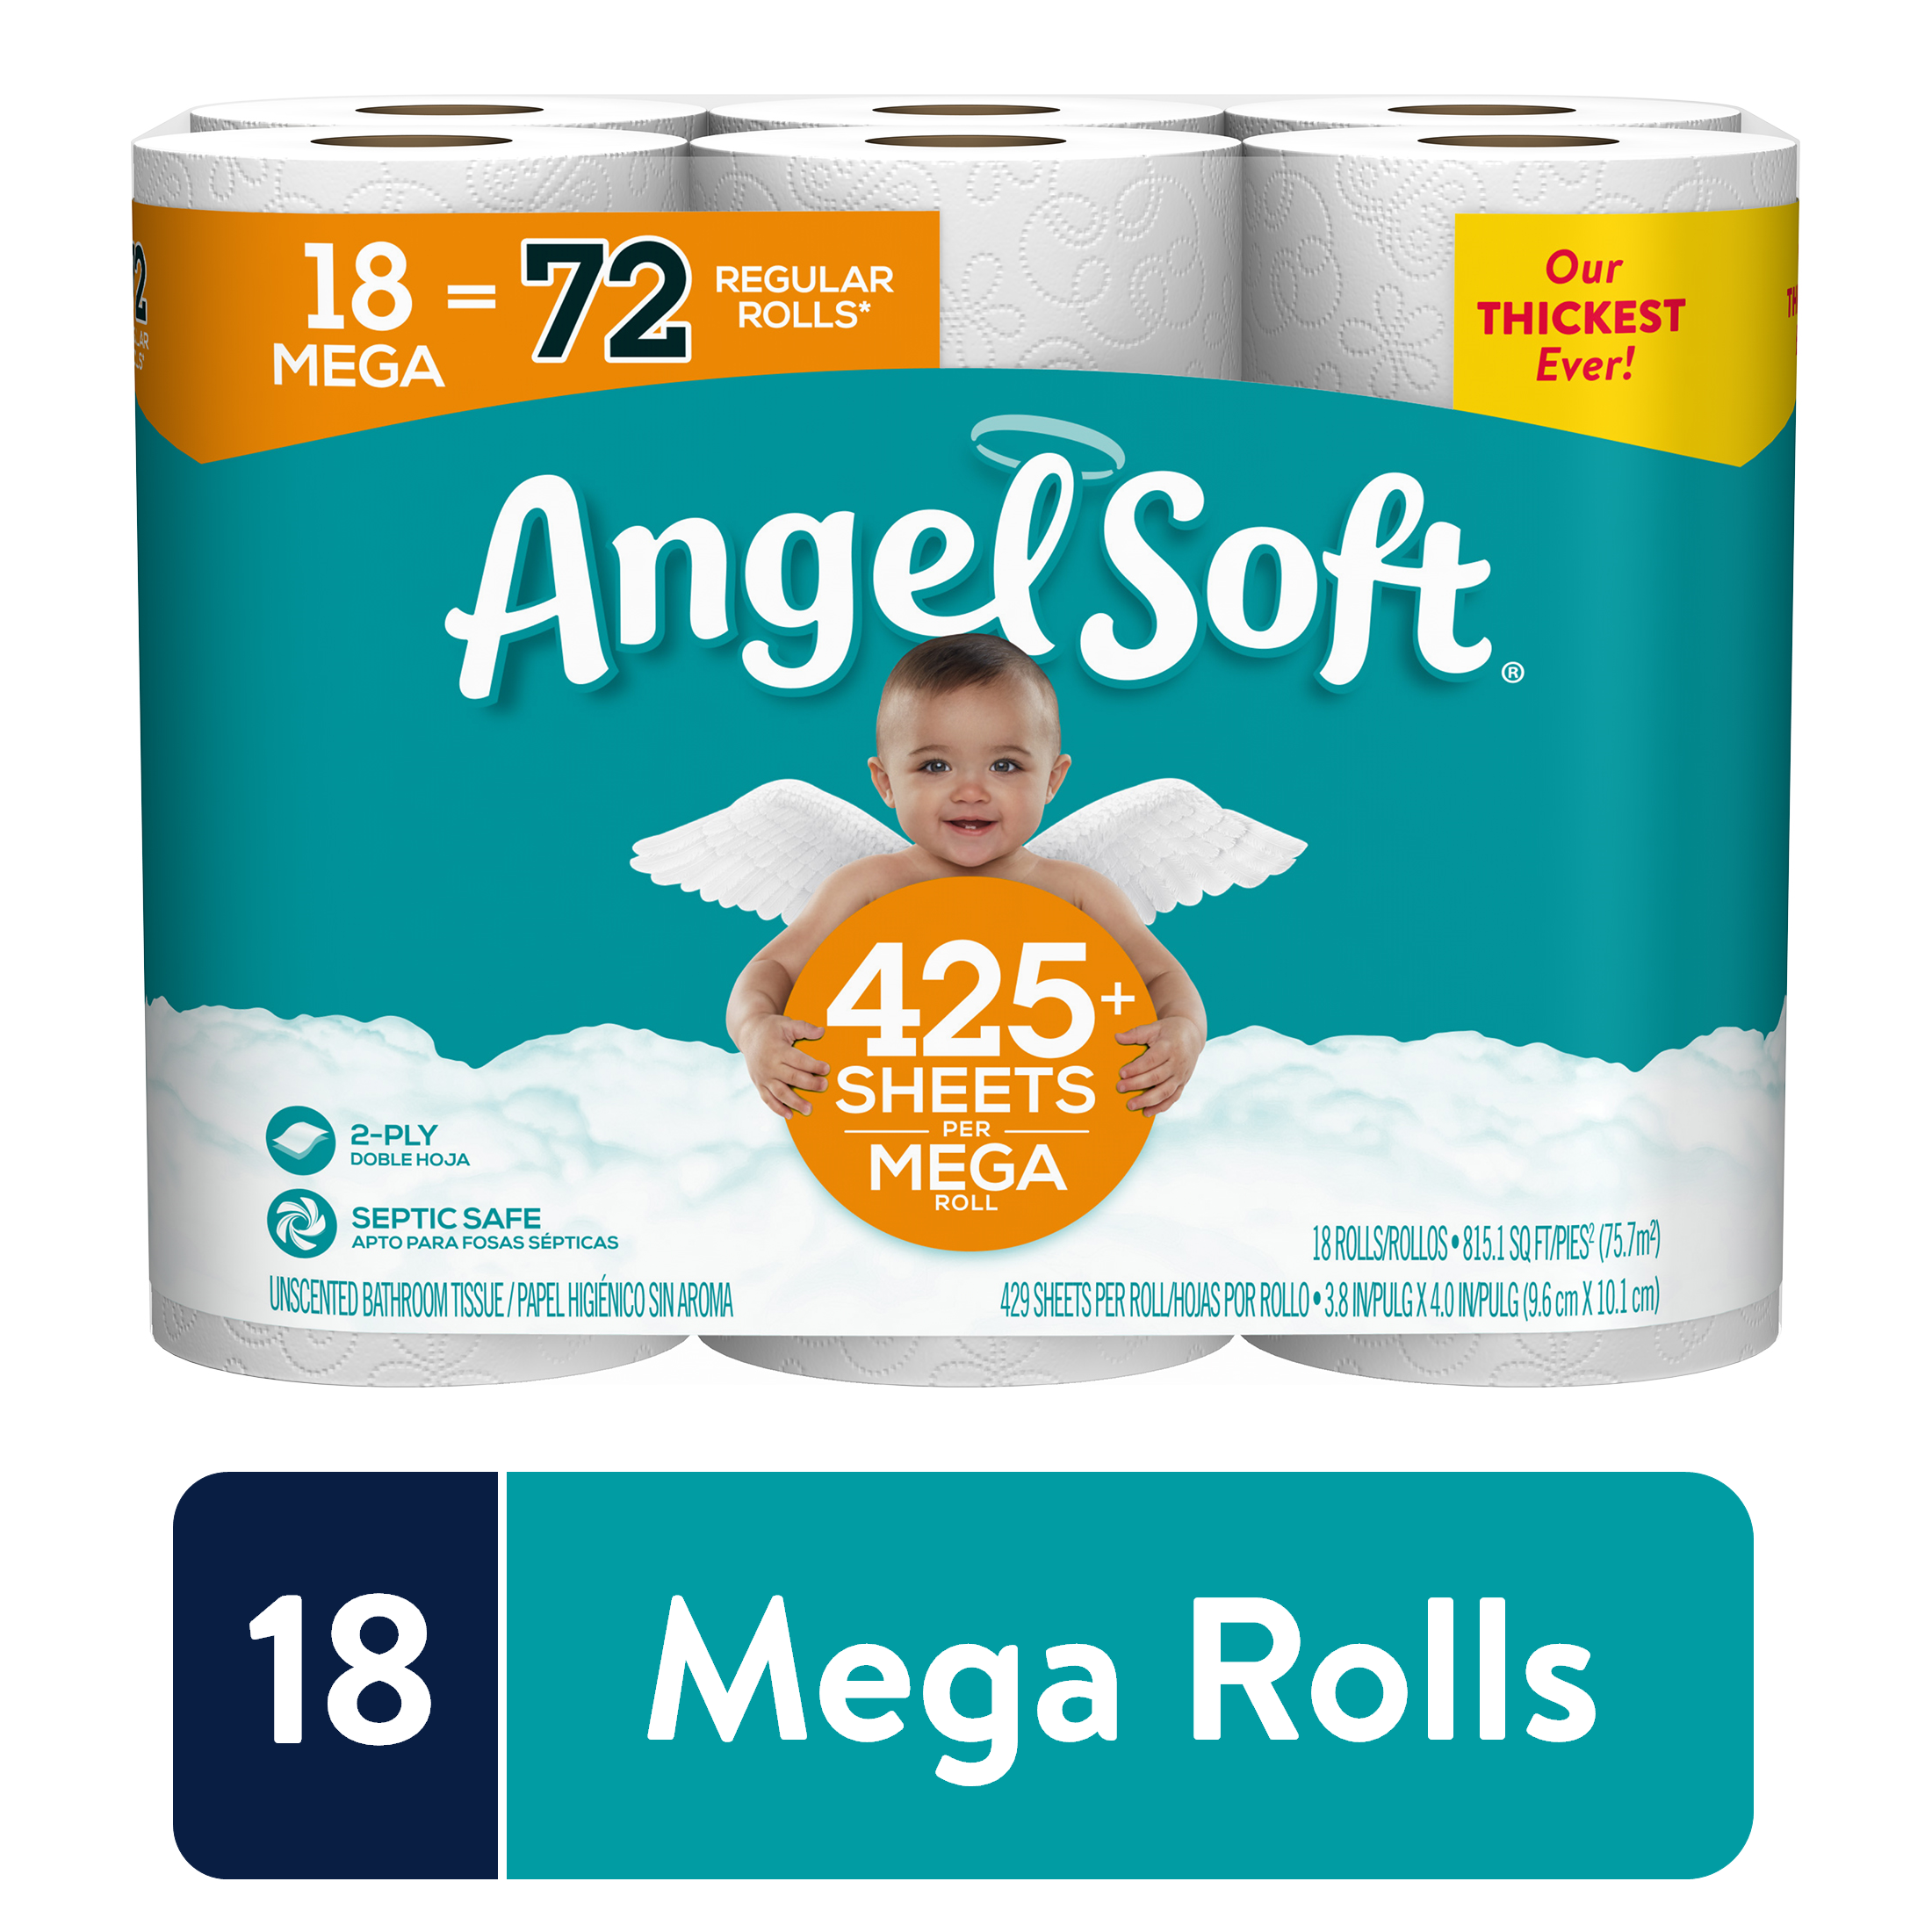 Angel Soft Toilet Paper, 18 Mega Rolls (= 72 Regular Rolls)